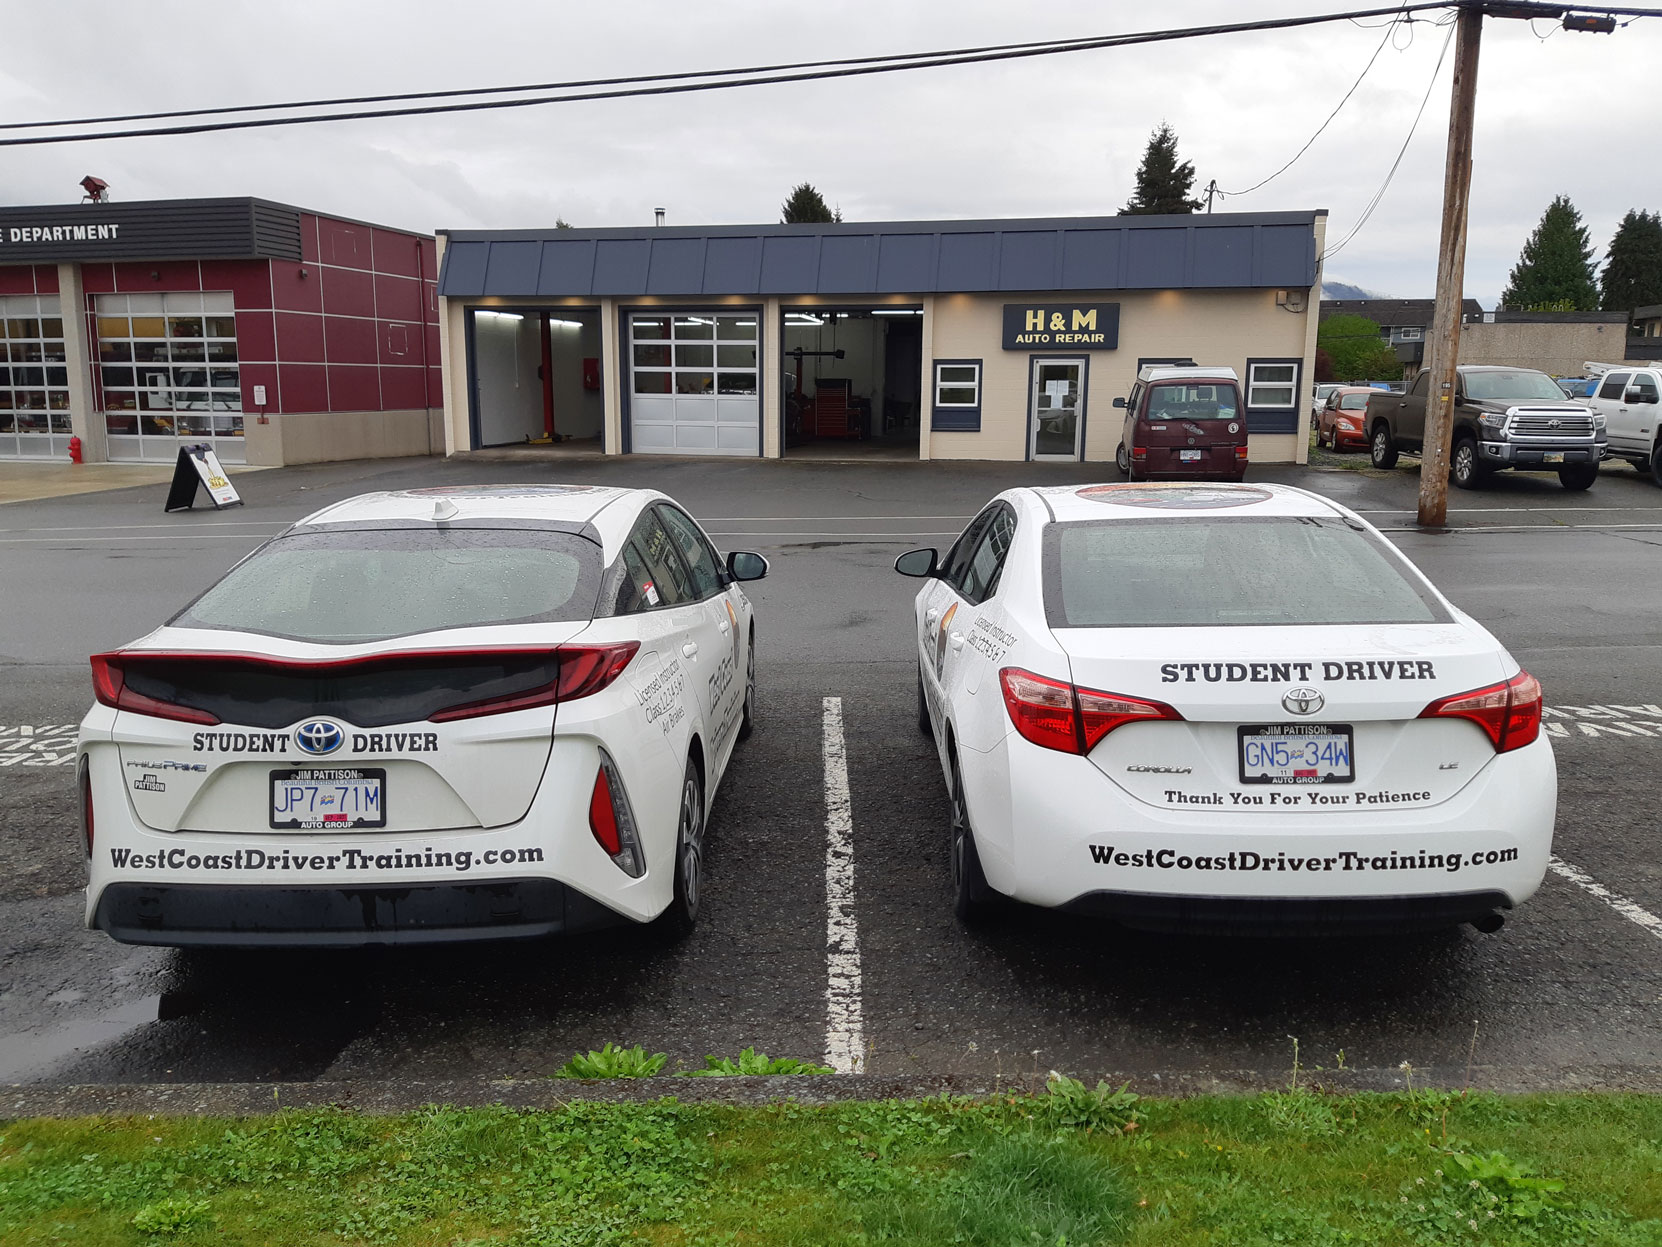 Two of our training cars waiting for their regular scheduled service at H&M Auto Repair, April 2021 (photo: West Coast Driver Training)